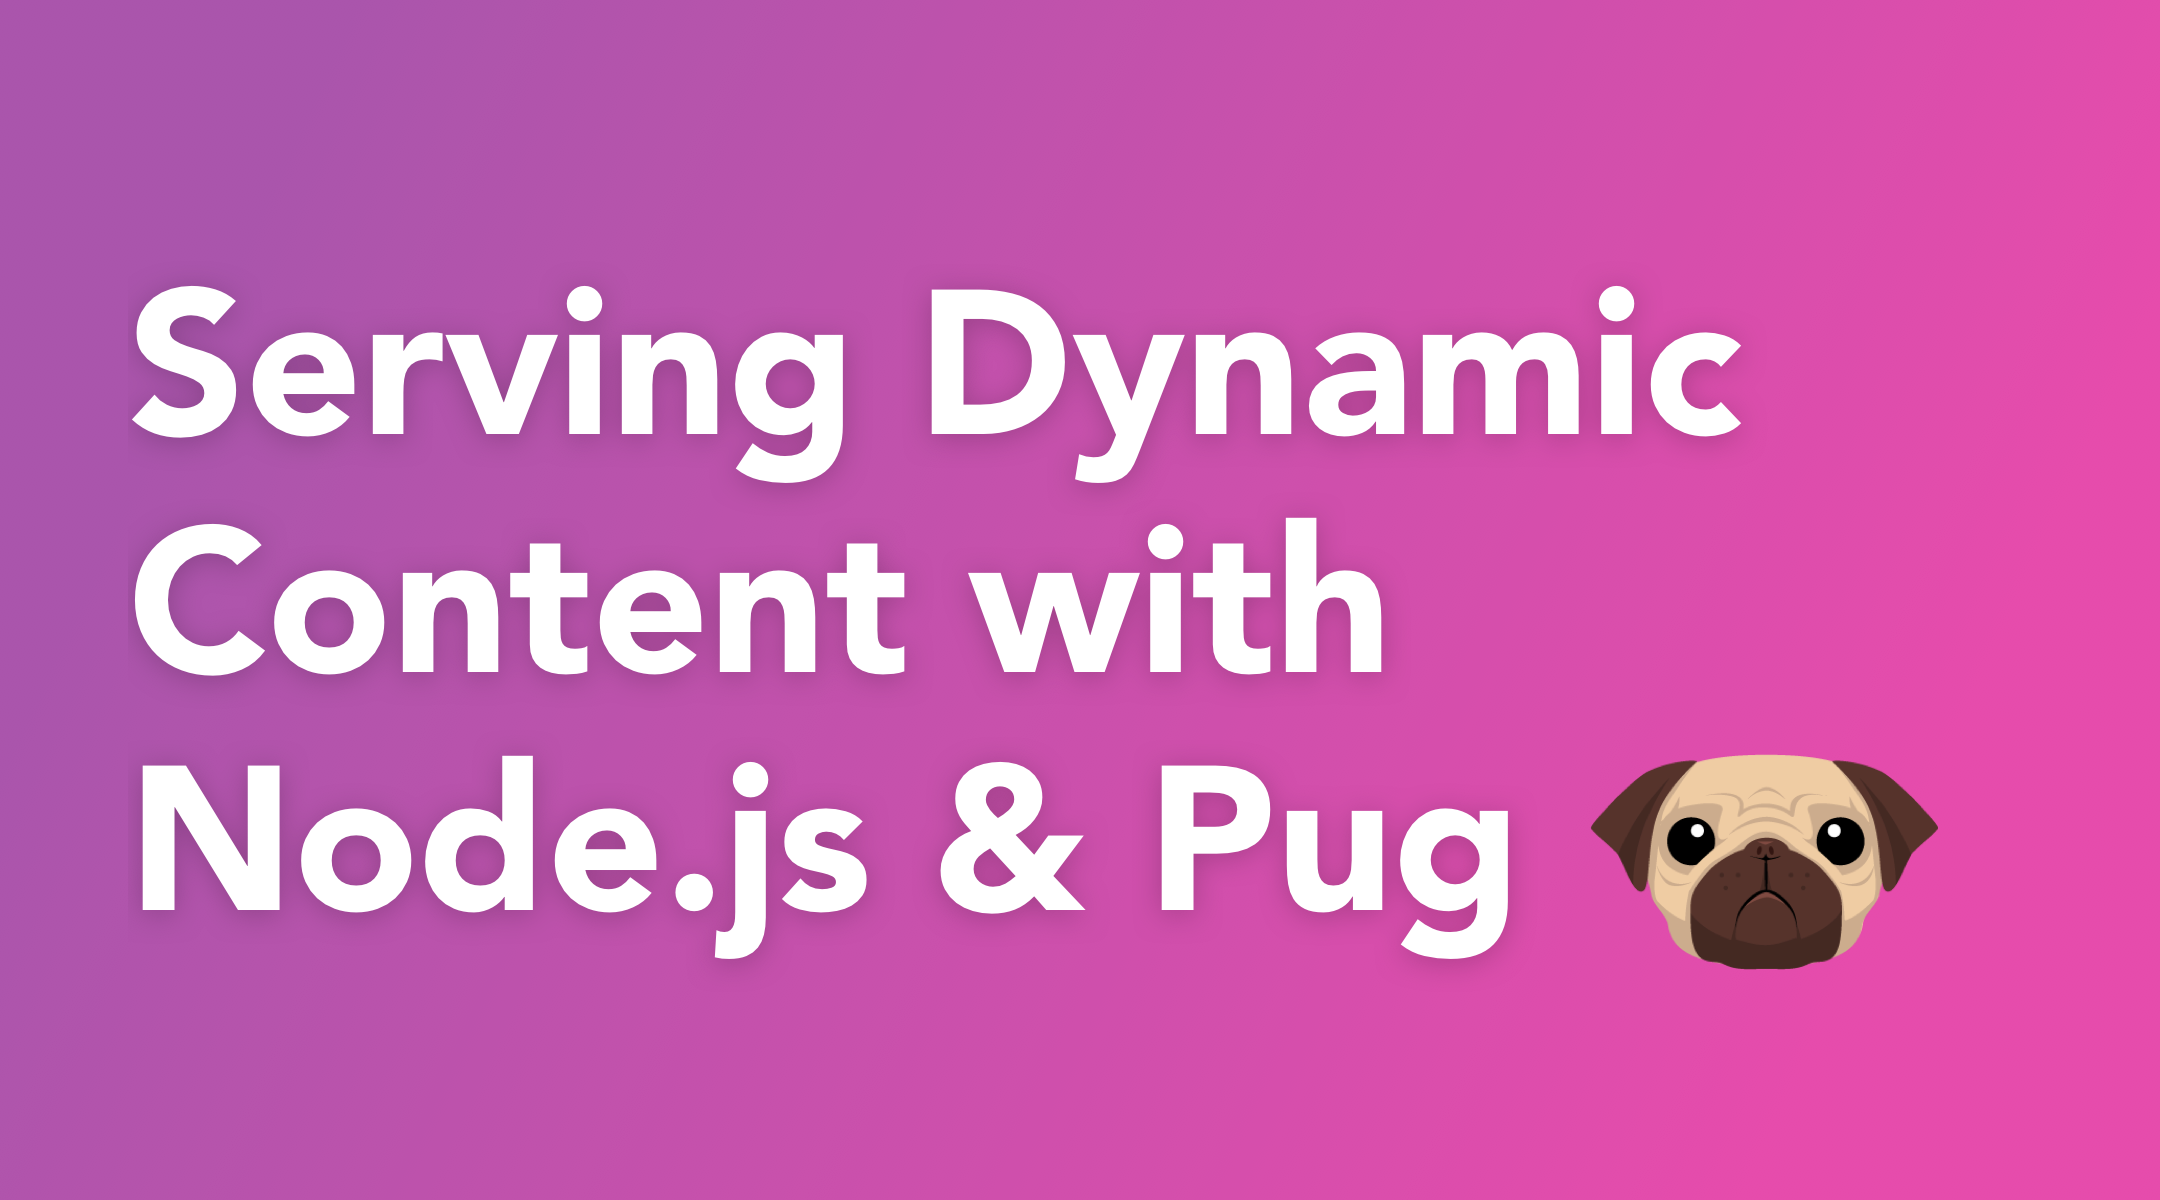 Serving Dynamic Content with Node js and Pug